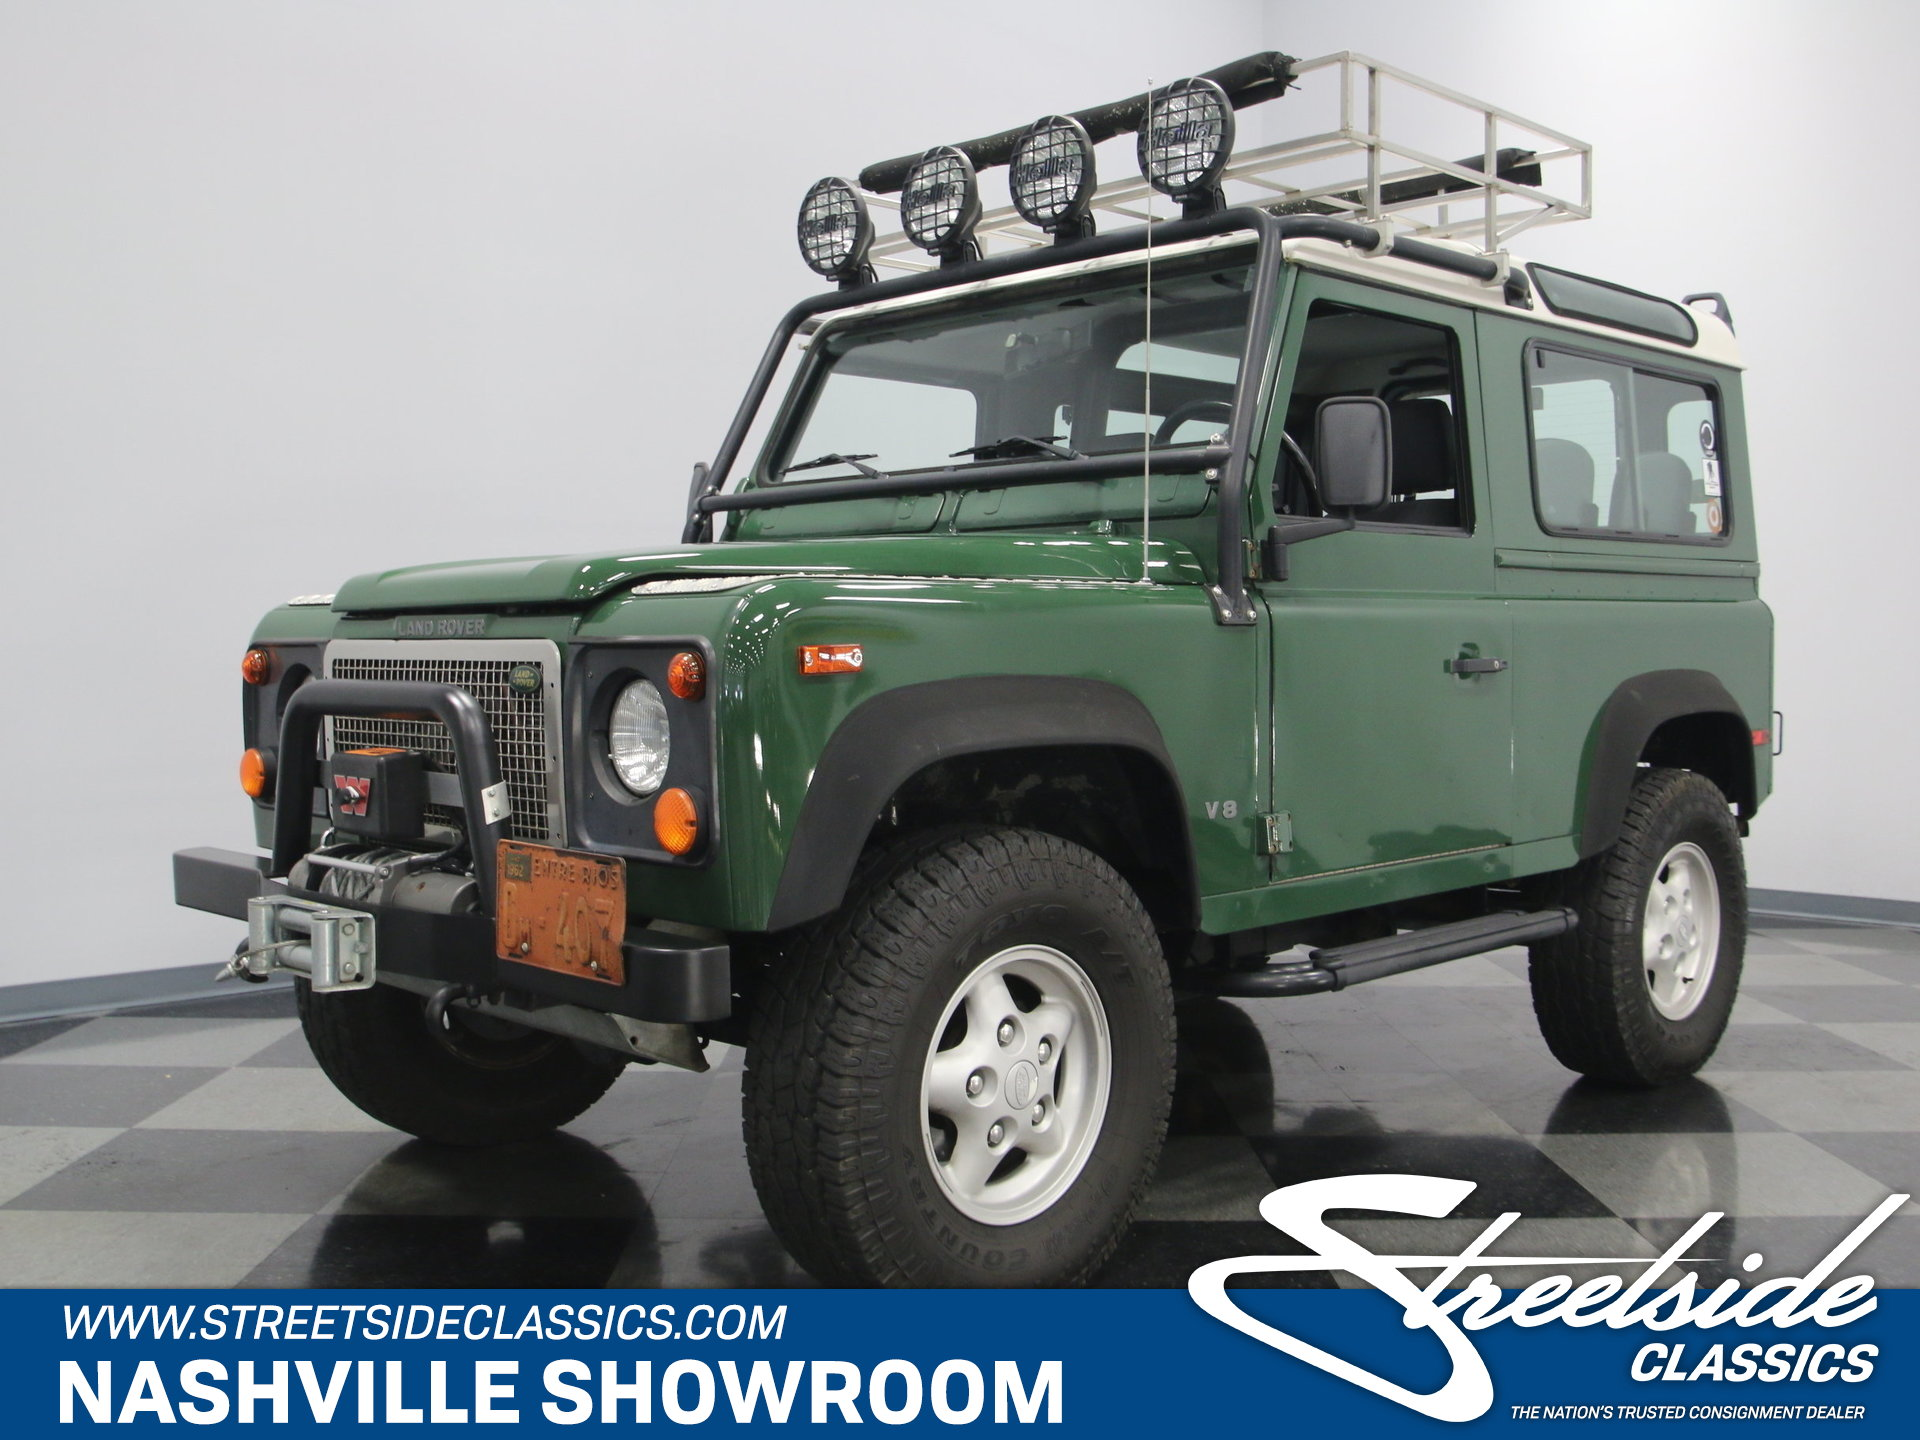 ... 1997 Land Rover Defender. Spincar view. Play Video